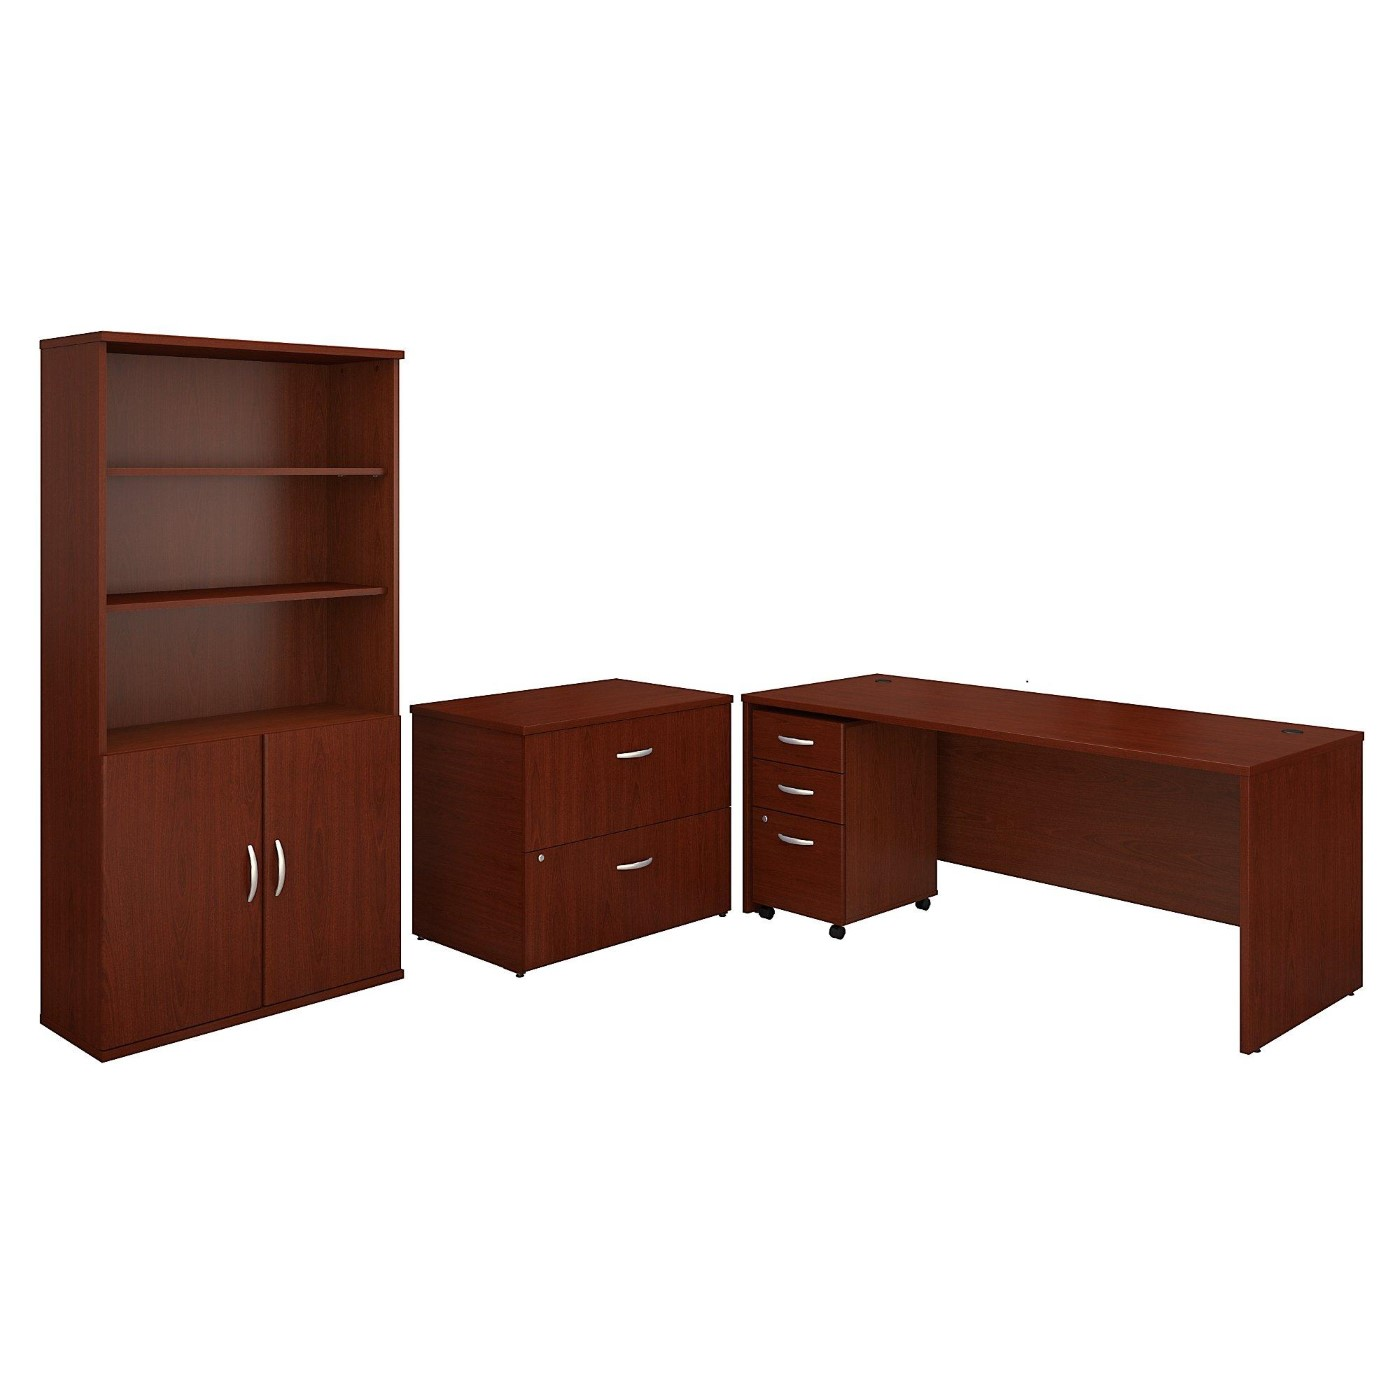 BUSH BUSINESS FURNITURE SERIES C 72W OFFICE DESK WITH BOOKCASE AND FILE CABINETS. FREE SHIPPING  VIDEO BELOW.